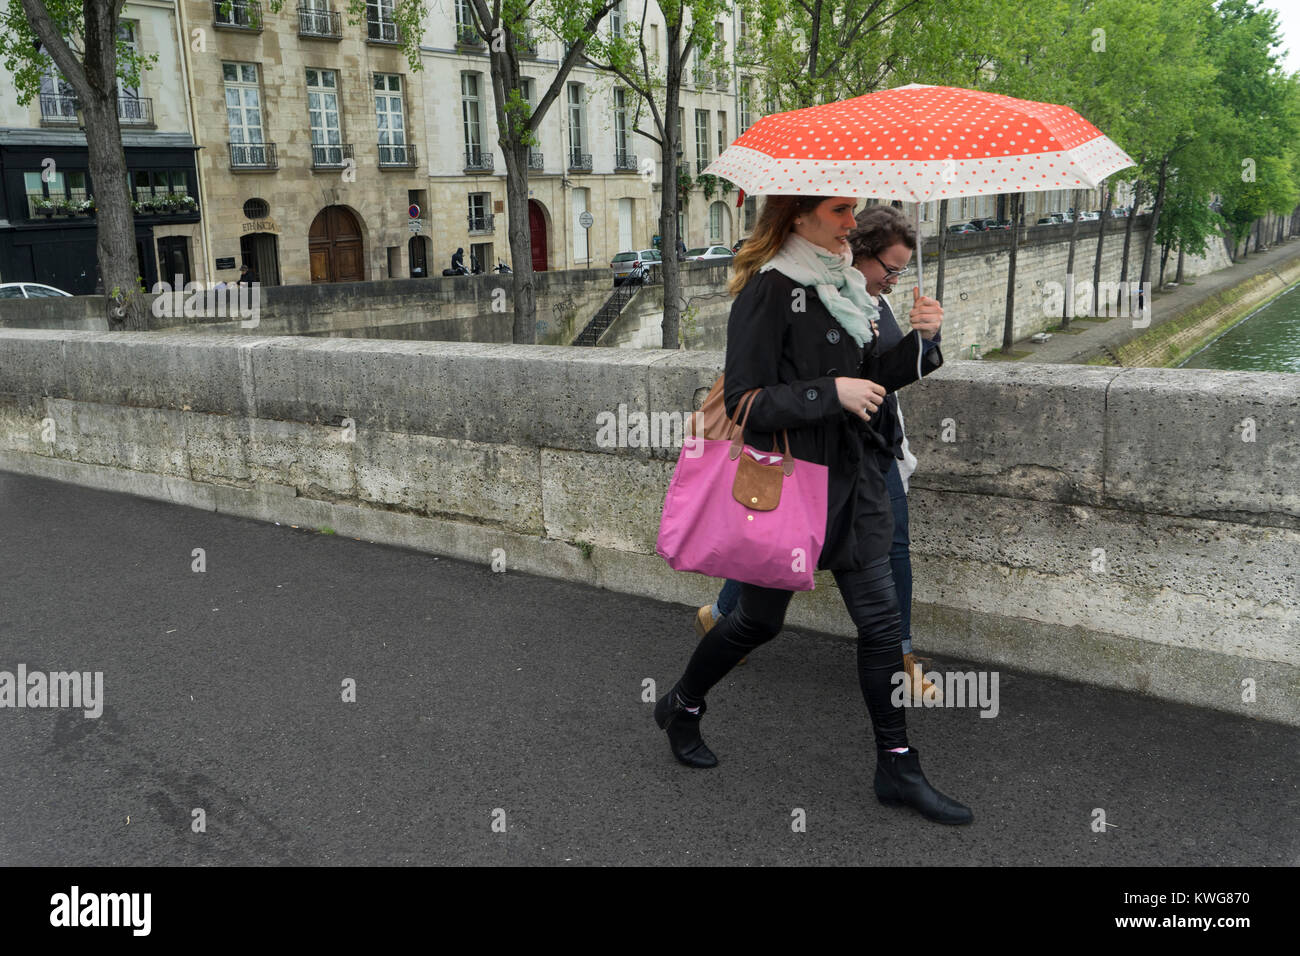 France, Paris, Walking across Pont Marie from Ile Saint Louis - Stock Image